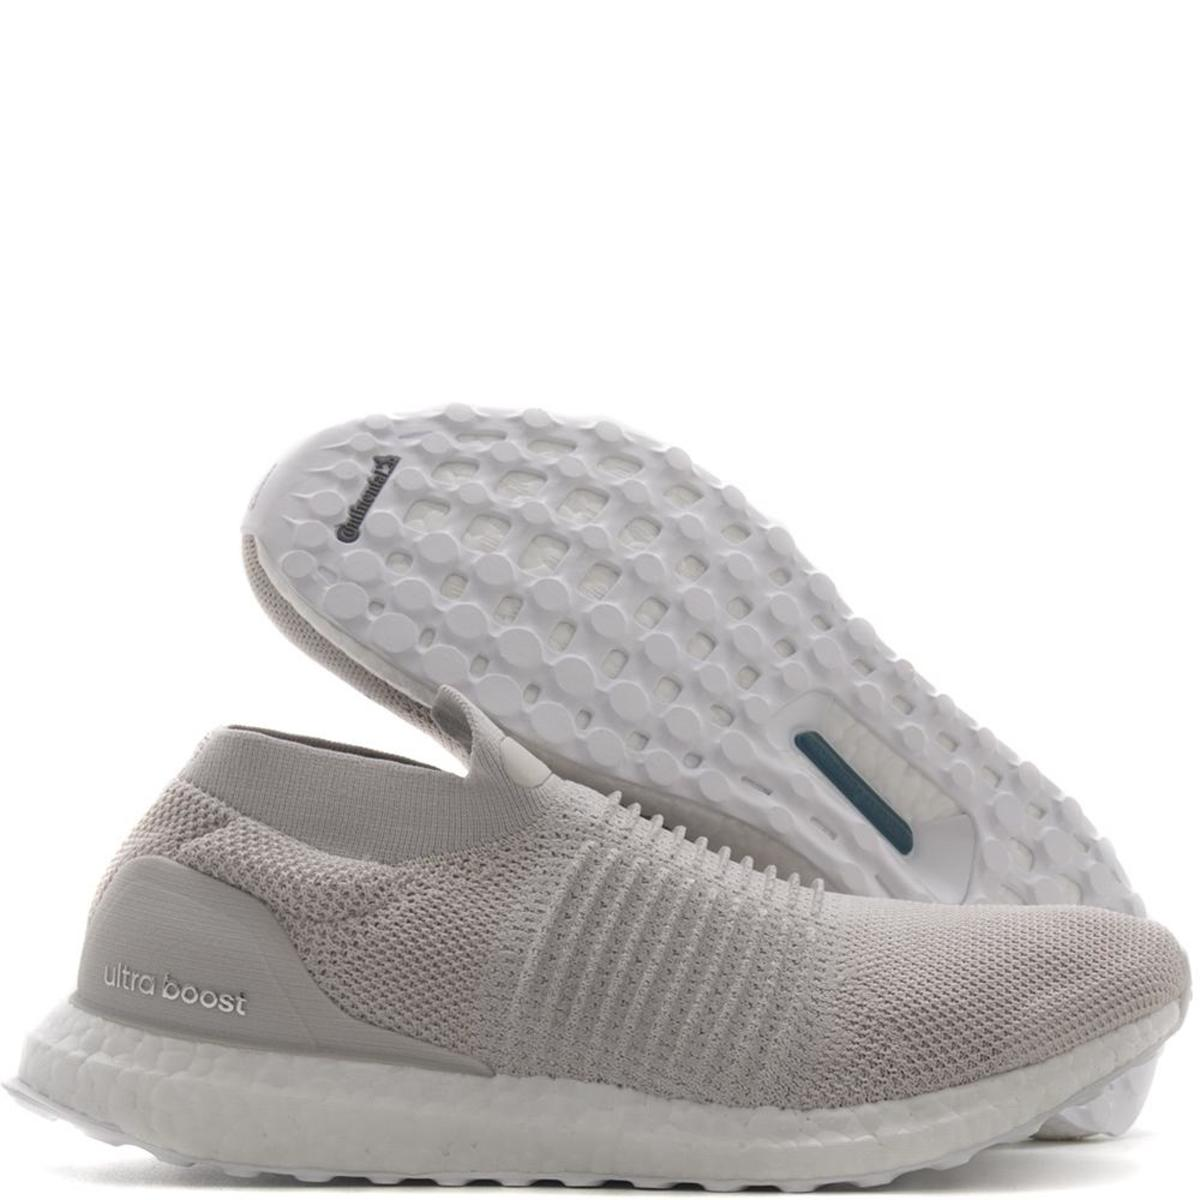 6e4abc26f258 Adidas Ultraboost Laceless Sneakers - Chalk Pearl